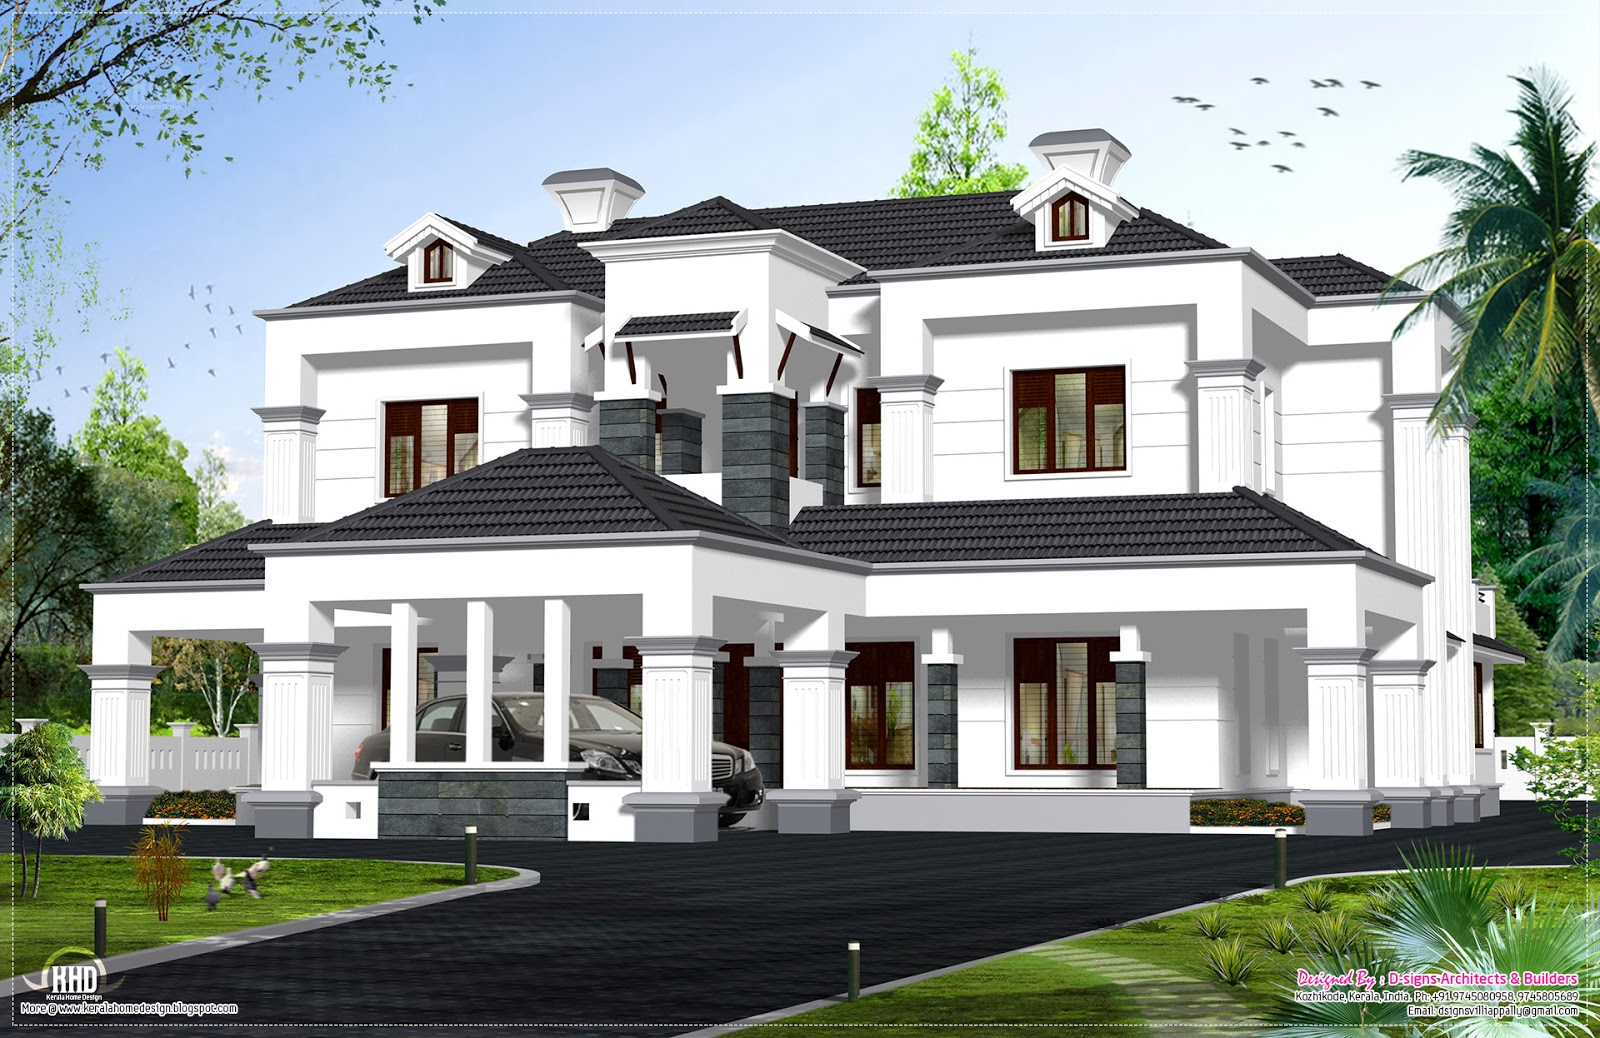 Victorian model house exterior kerala home design and for Model home plans